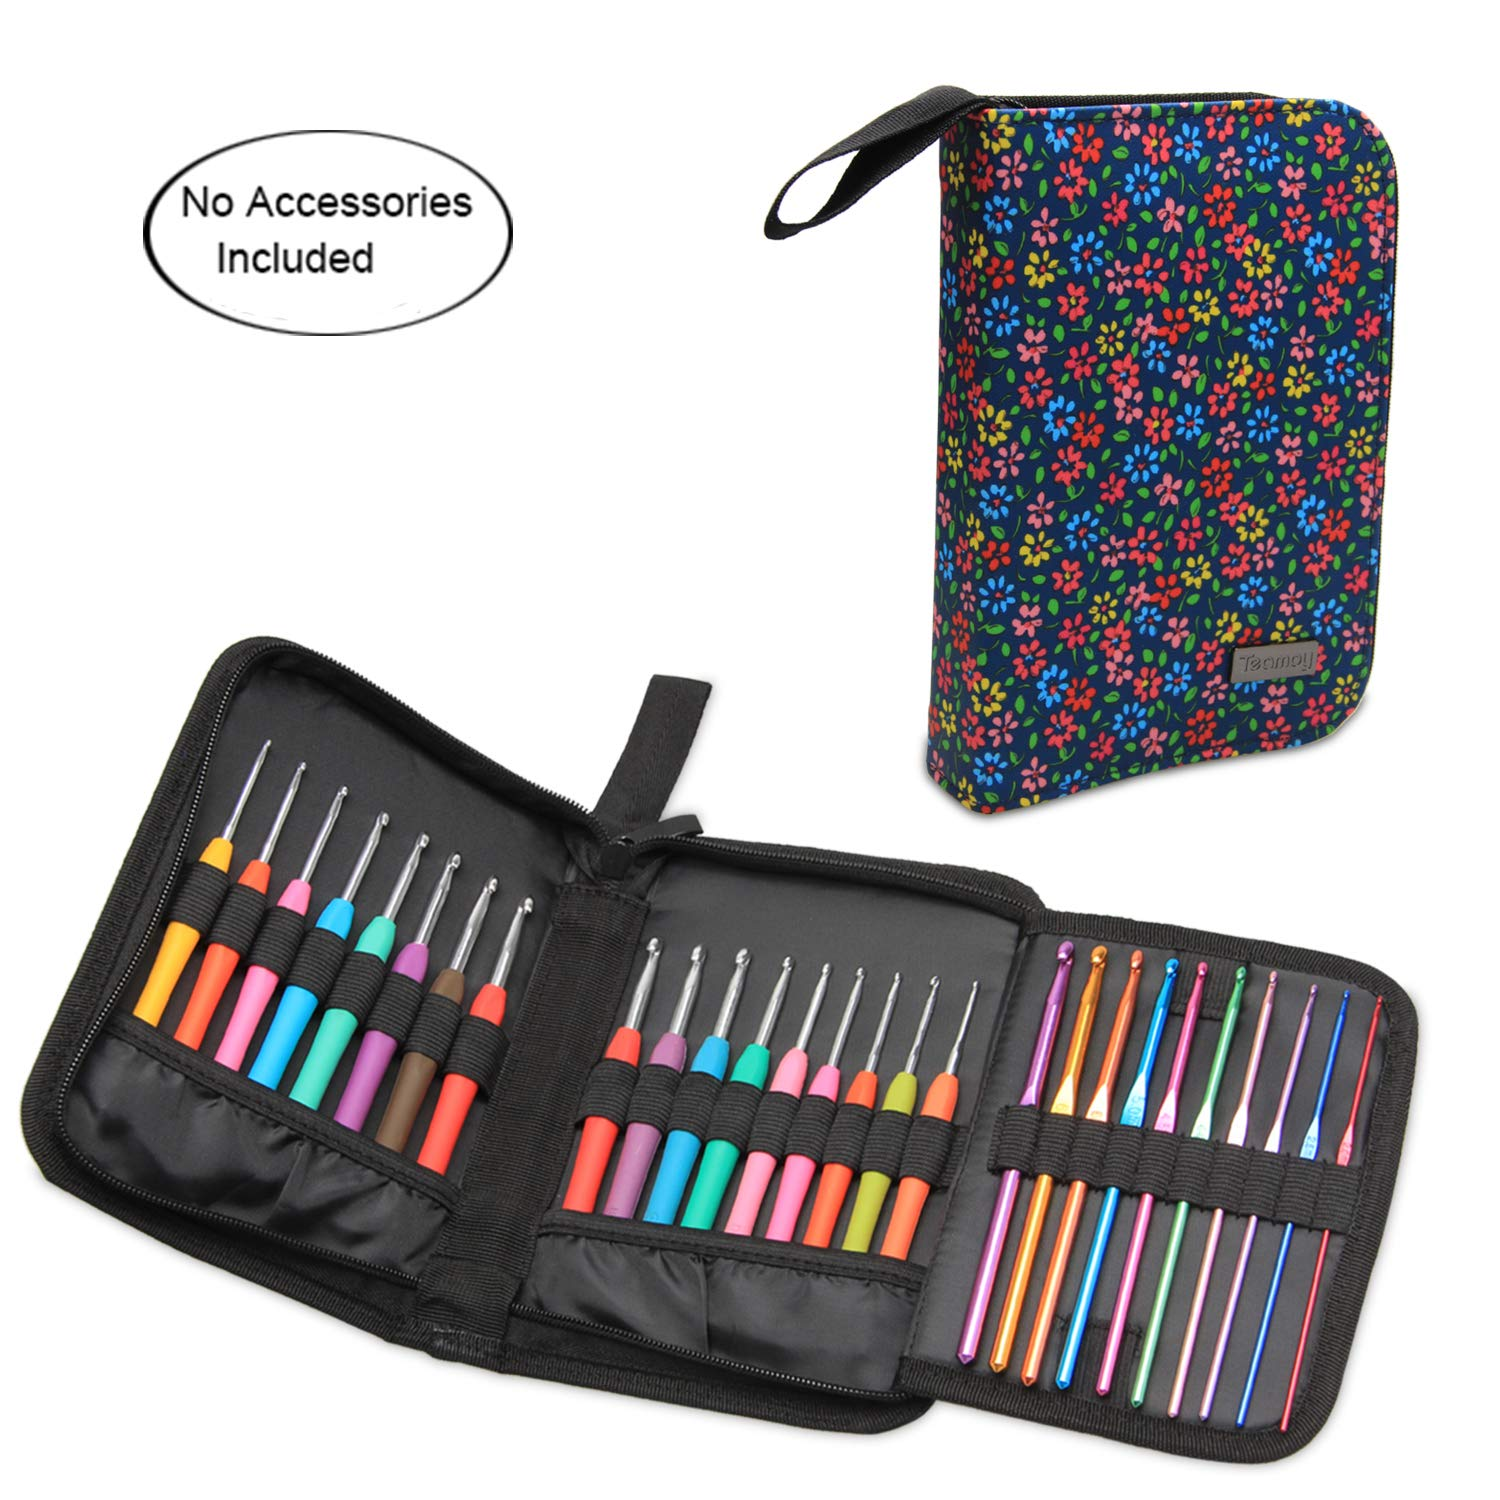 Teamoy Crochet Hook Case, Travel Carry Bag for Ergonomic Crochet Hooks Kits, Aluminum Crochet Hooks, Steel Crochet Hook and More, Lightweight, Well Made-NO Accessories Included, Flowers Blue